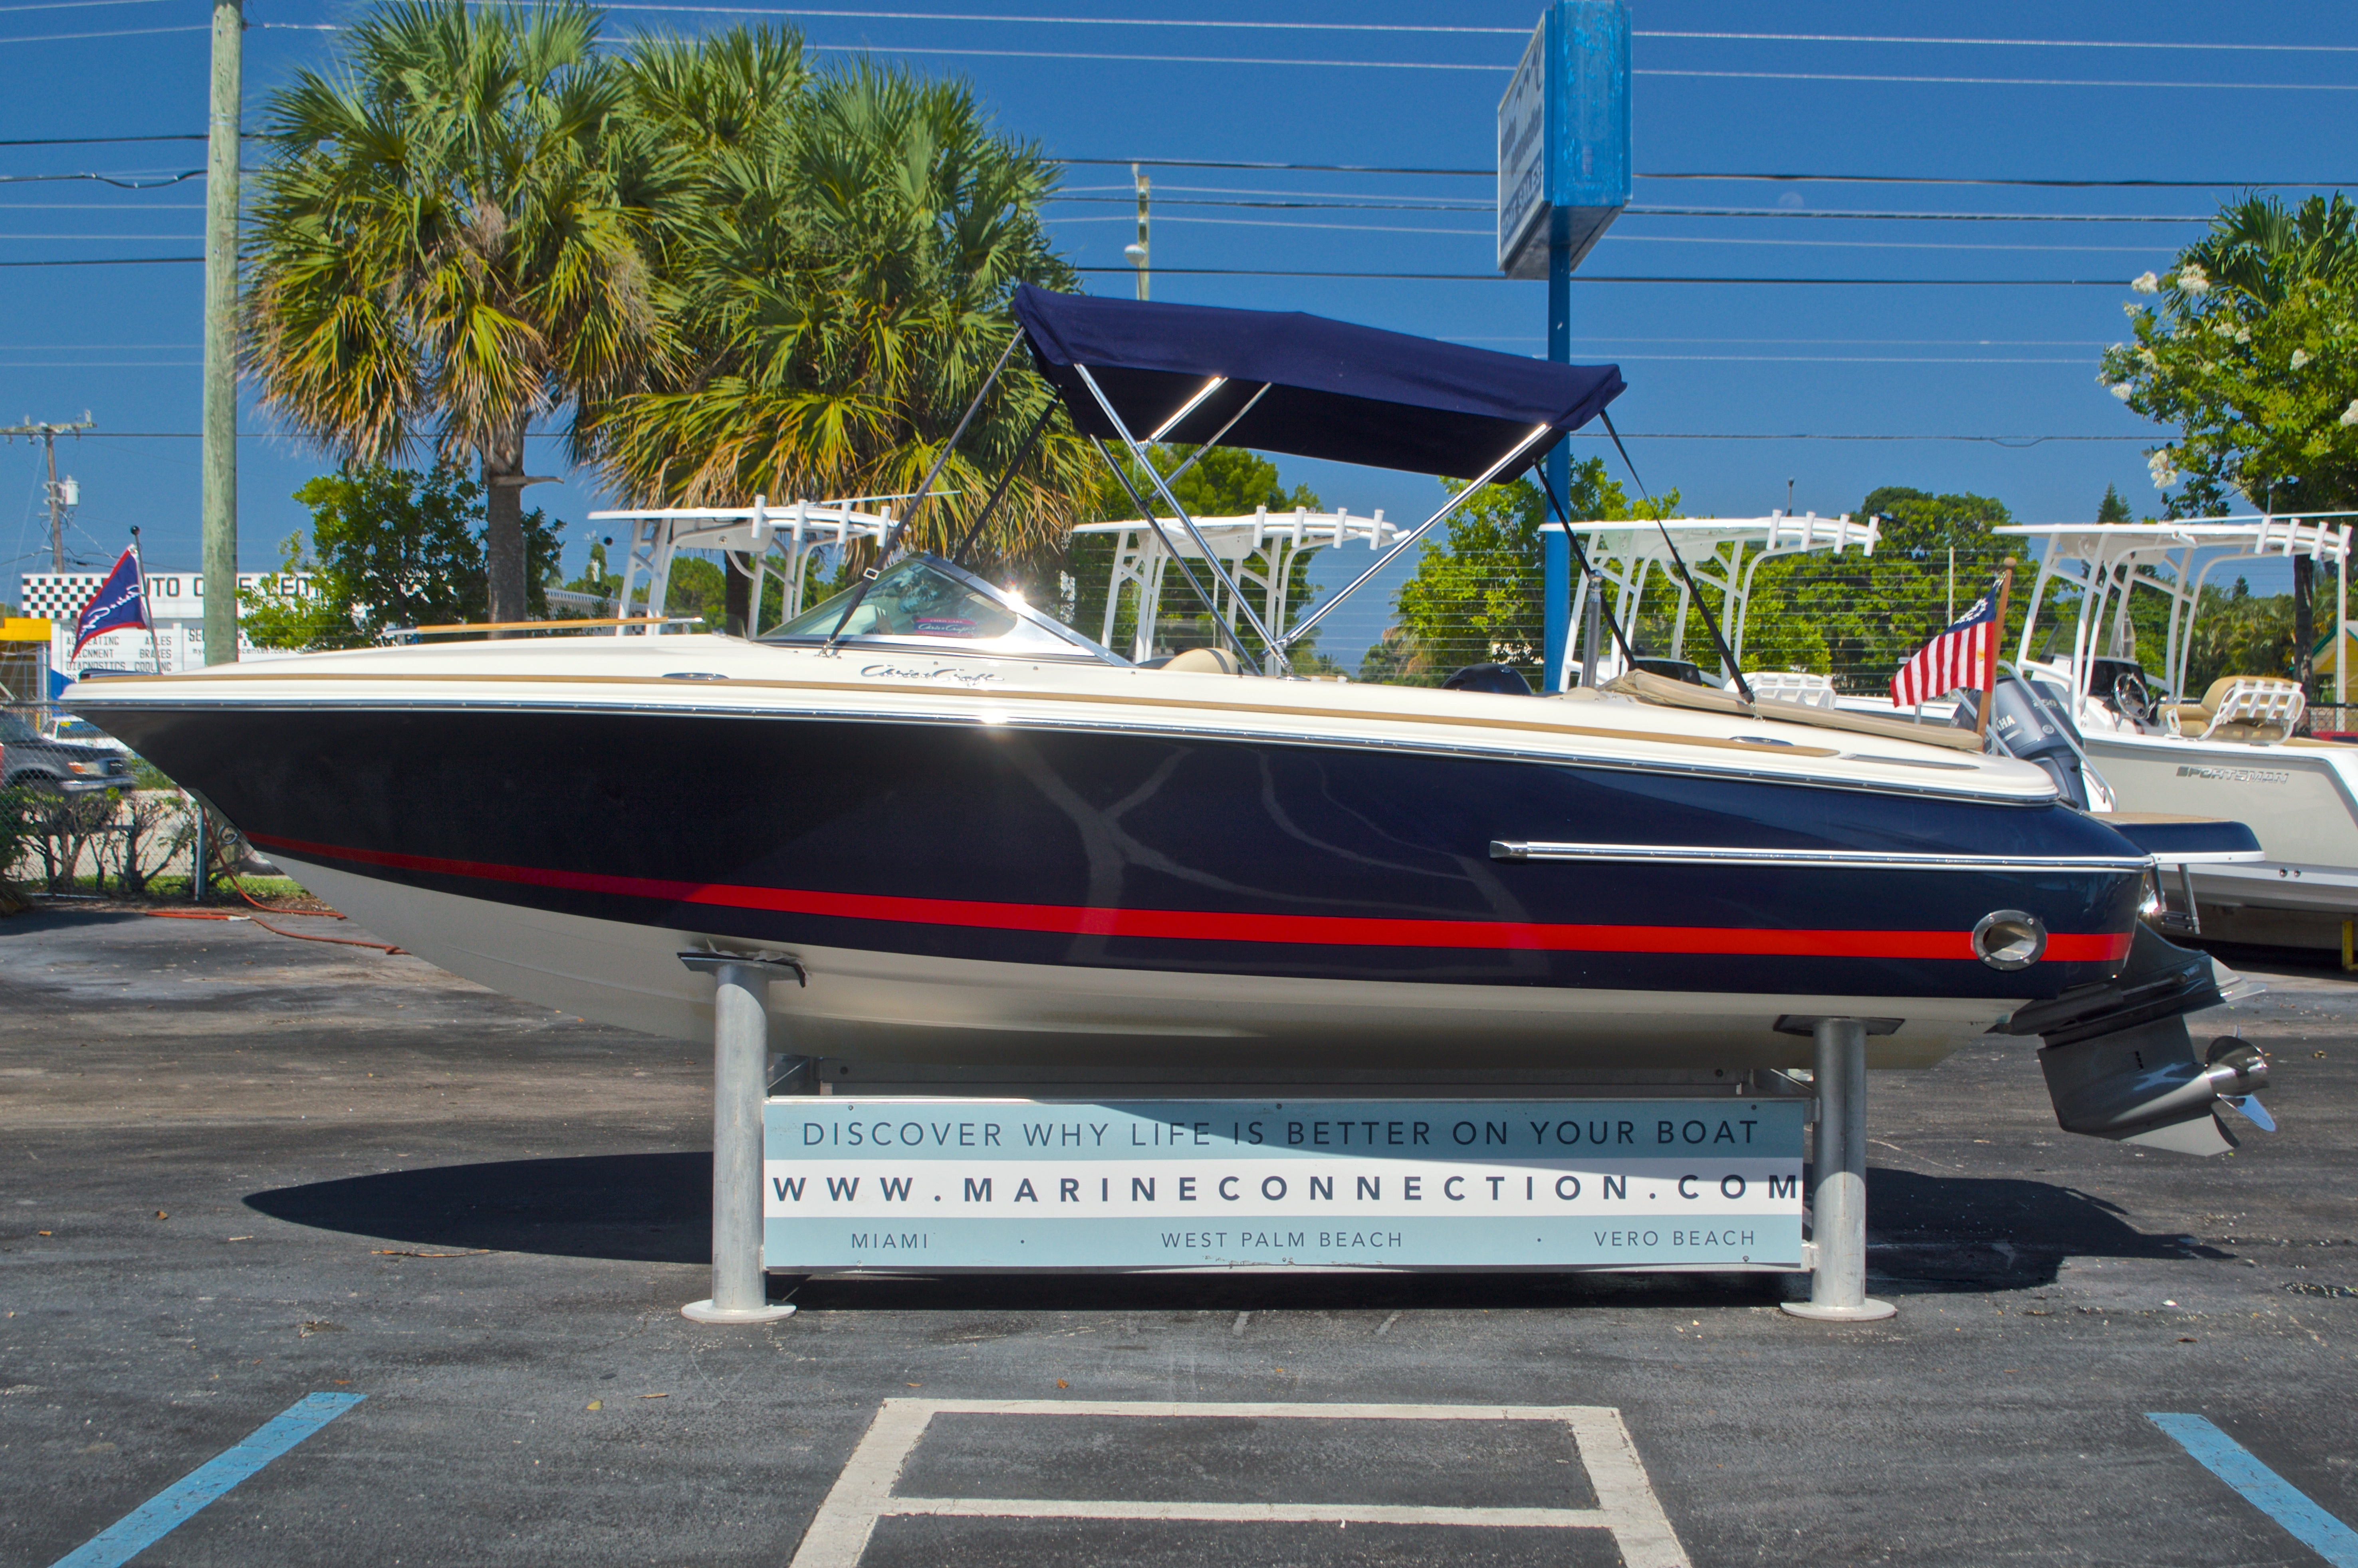 Thumbnail 4 for Used 2007 Chris-Craft 20 Speedster boat for sale in West Palm Beach, FL